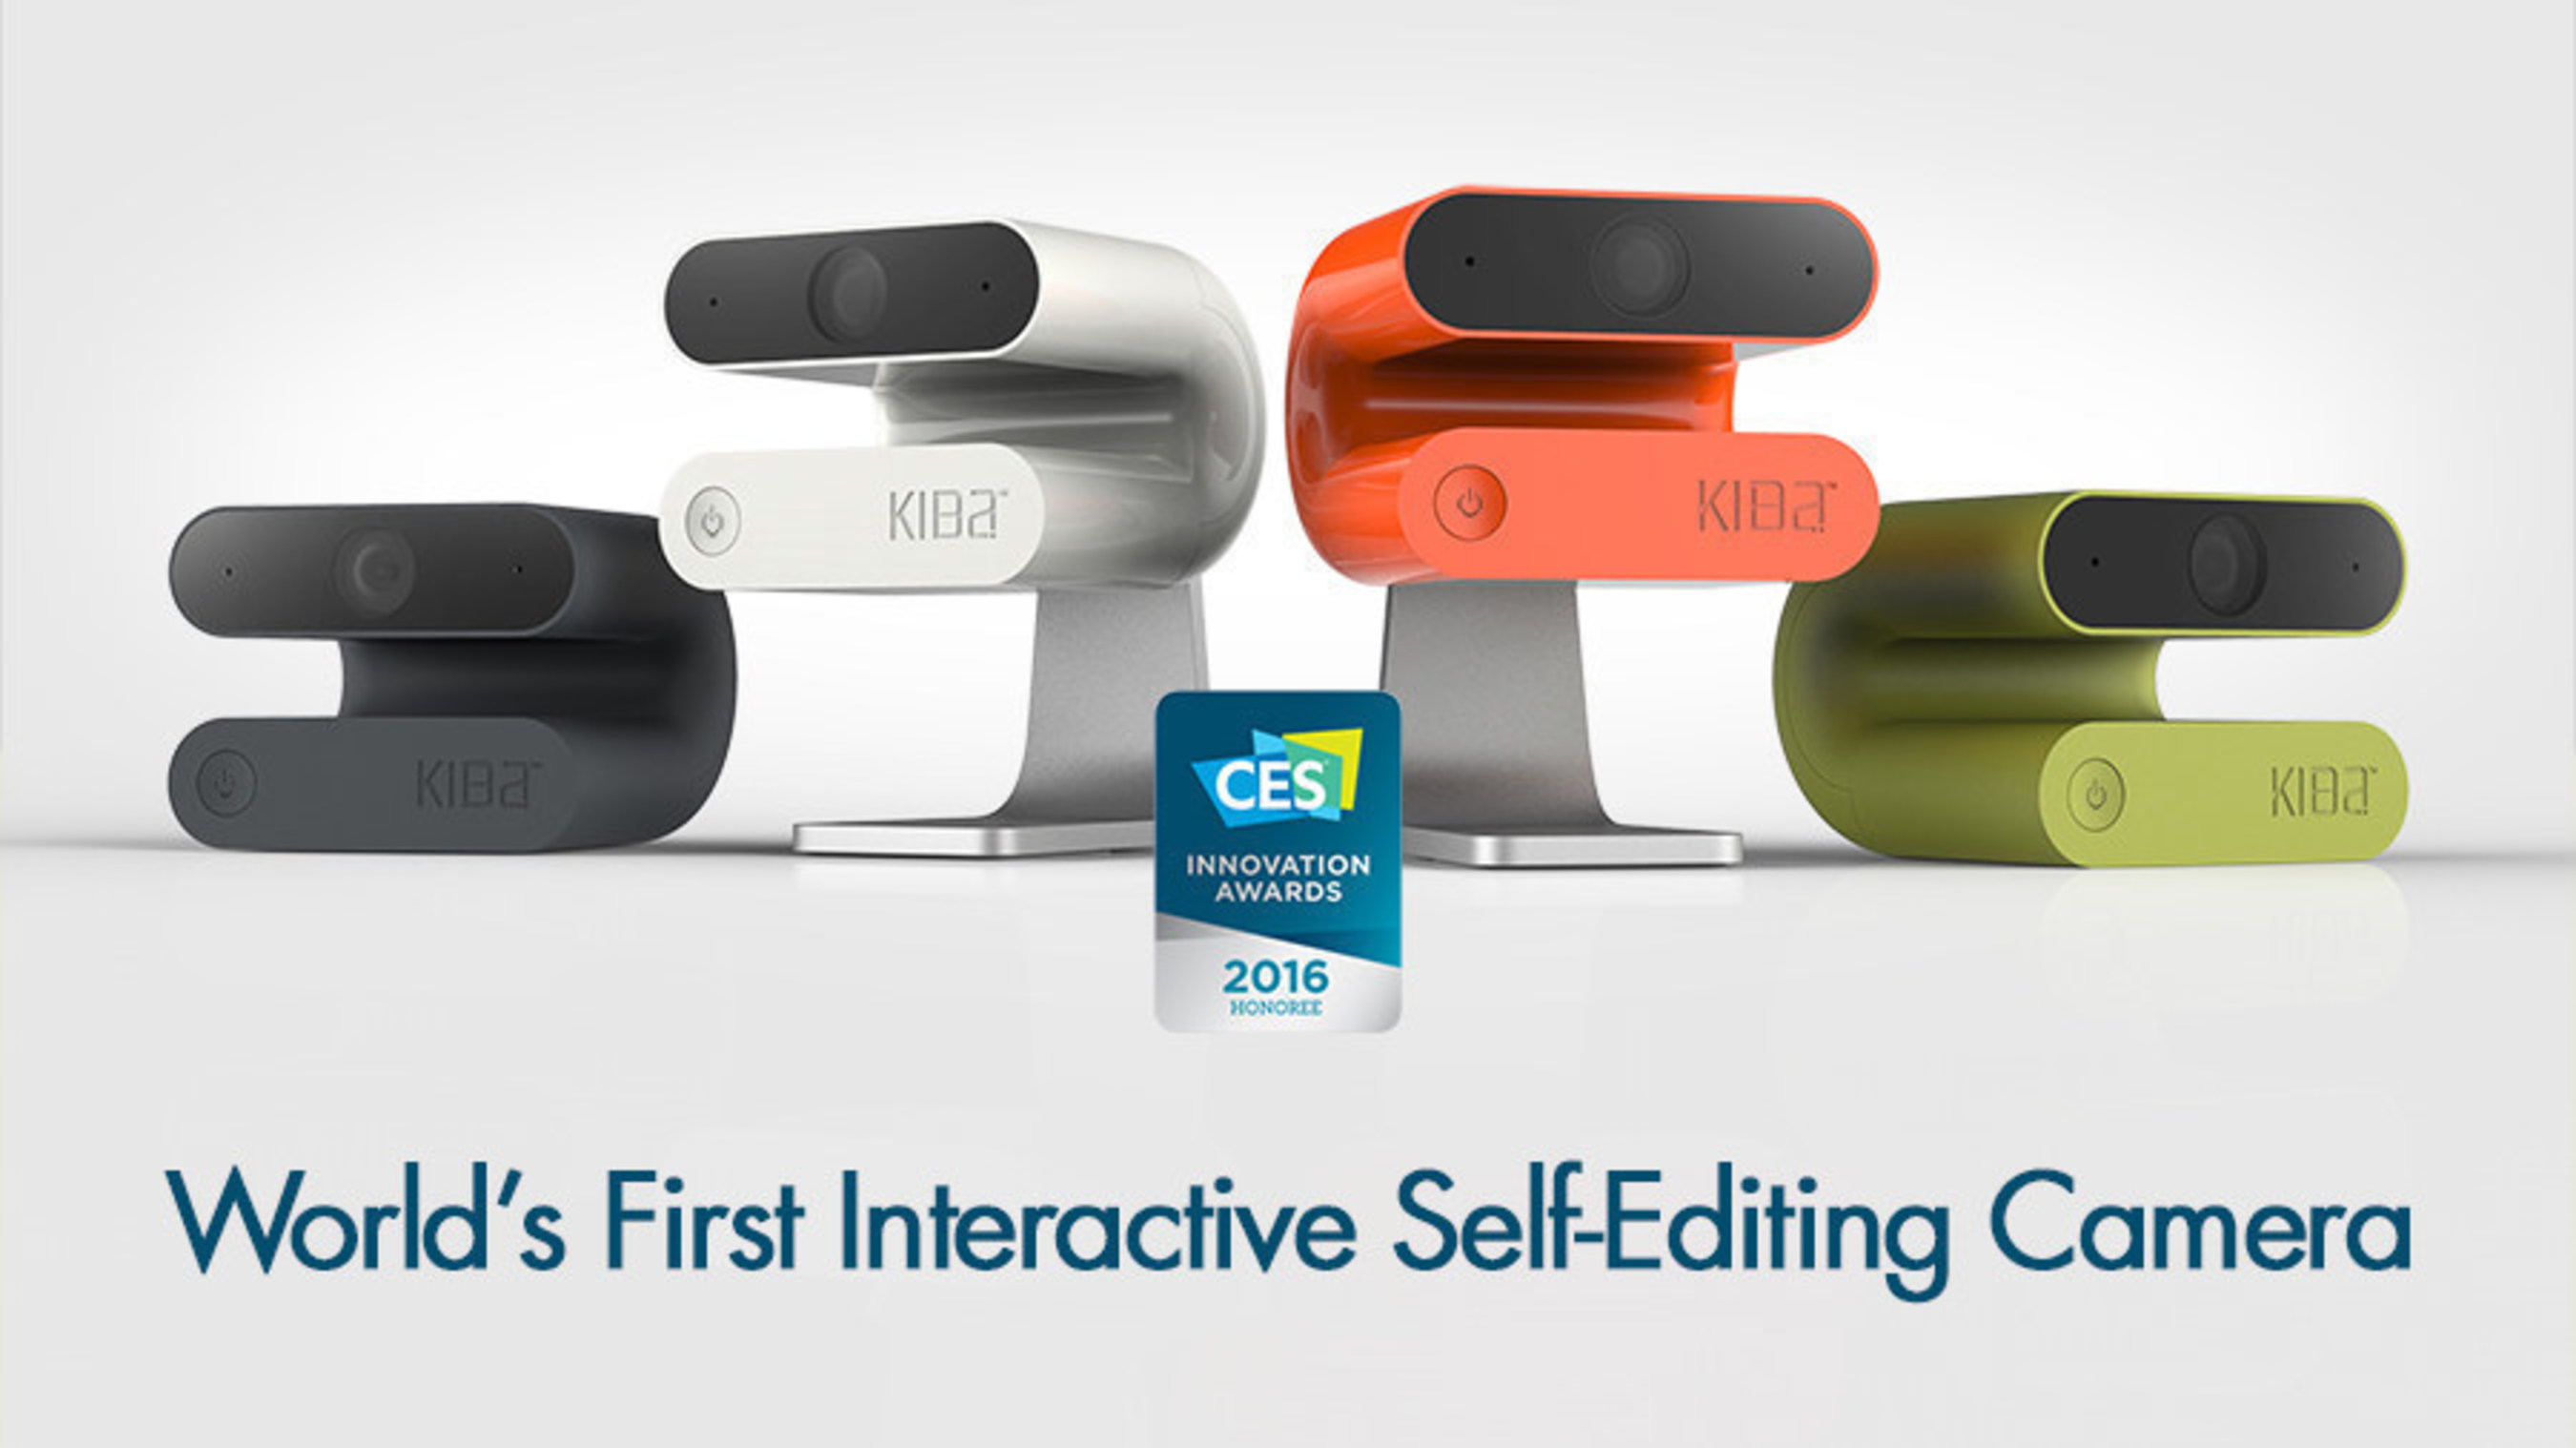 "Kiba is world's first interactive self‐editing video camera. Winner of two CES 2016 Innovation awards, Kiba allows users to enjoy their best moments with friends and family. It uses intelligent, patented ""joy ranking"" technology to capture and curate footage, providing users with beautifully edited, easily shareable video clips. Kiba responds to voice commands like ""Kiba, selfie,"" ""Kiba, record,"" or ""Kiba, remember.""  Go to http://getkiba.com to learn more or order now!"